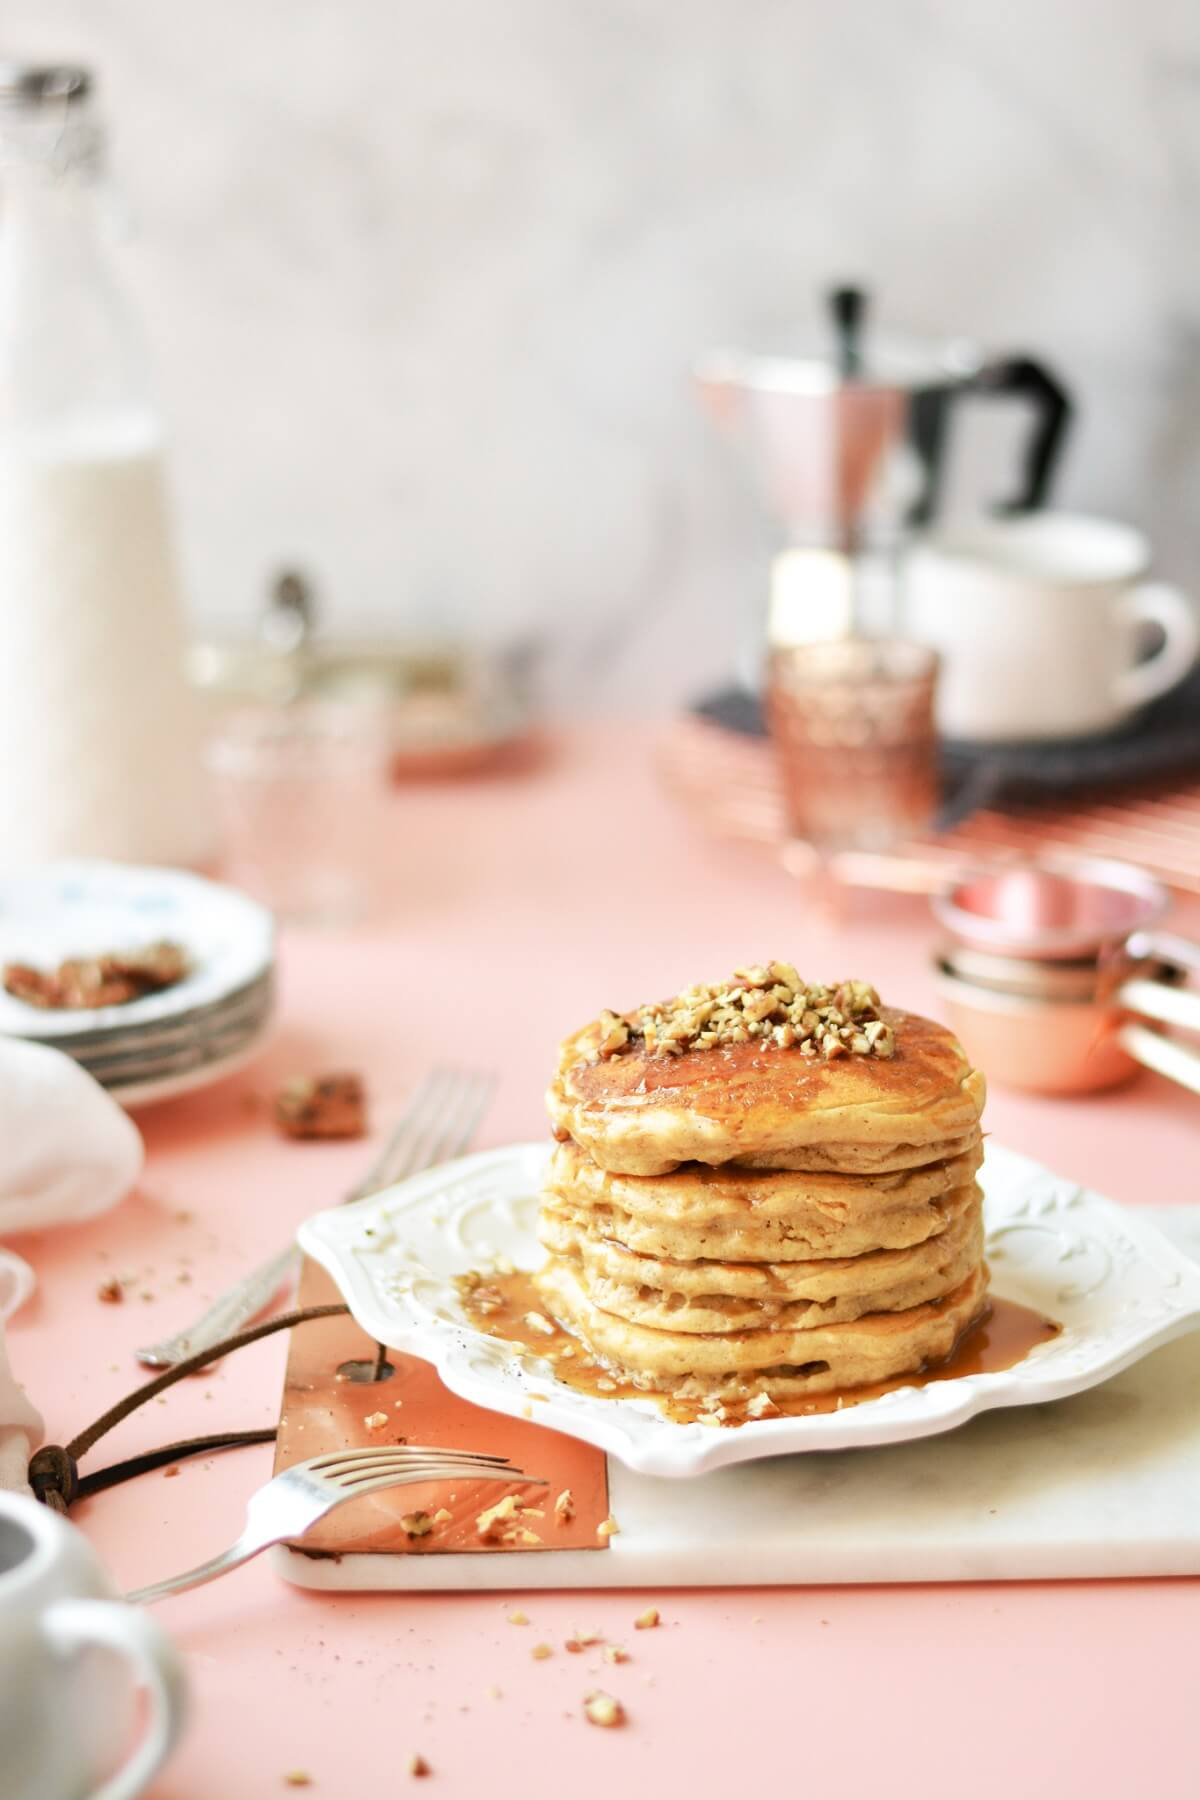 A stack of pancakes topped with pecans and toffee sauce, on a white plate, surrounded by plates and coffee cups.